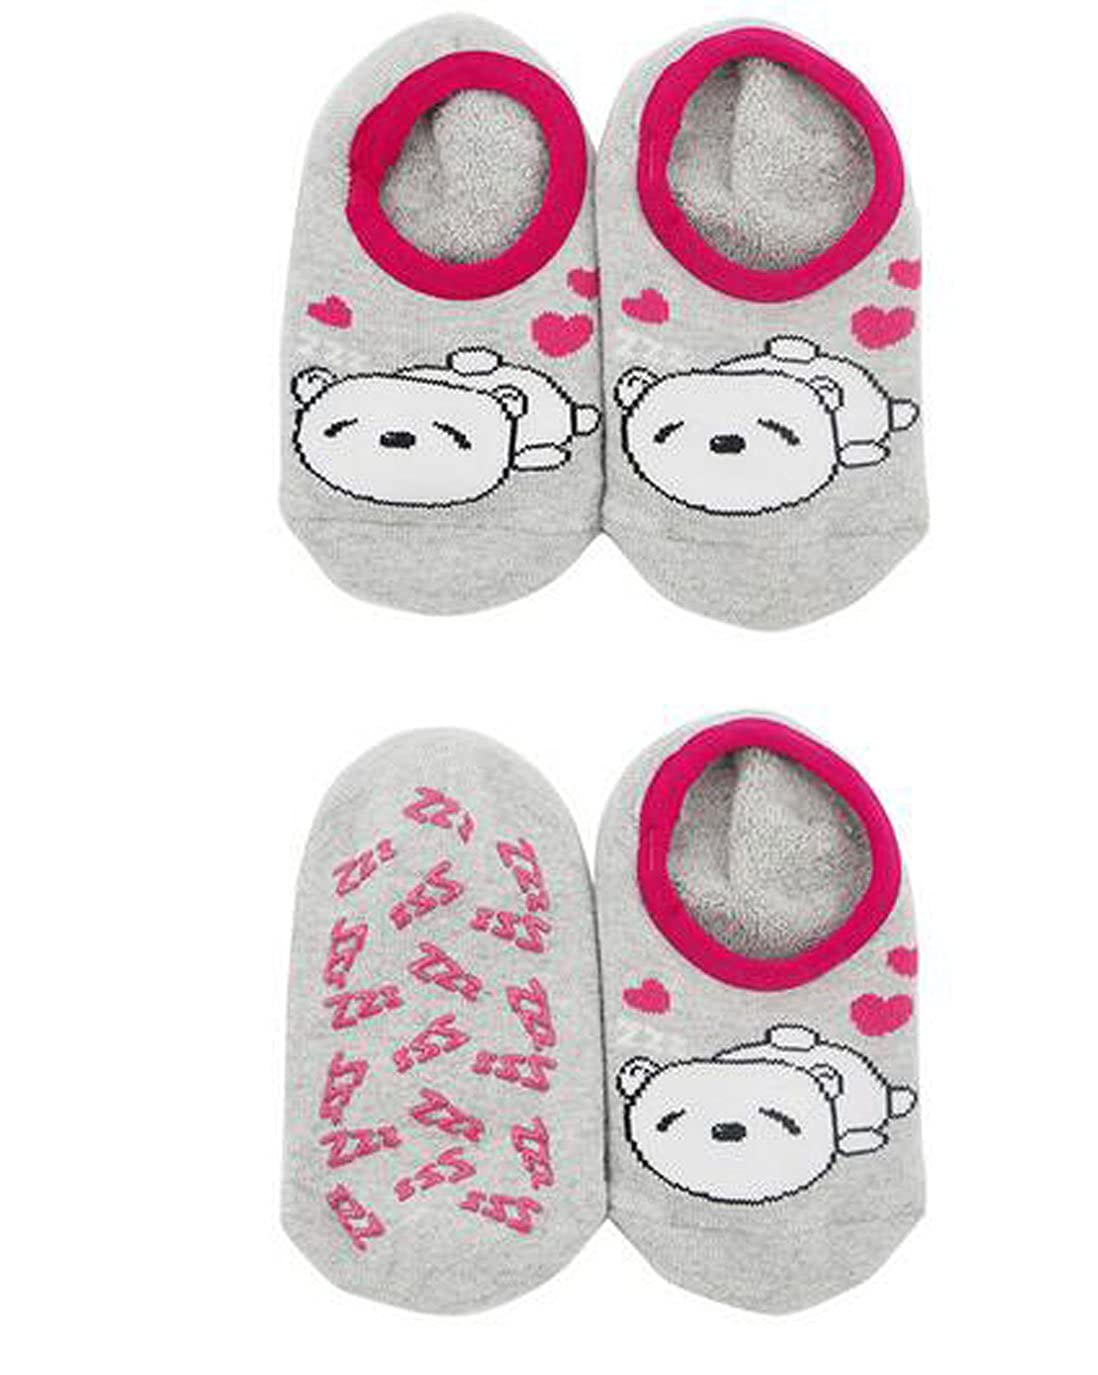 4-6years, girl random color Lucky staryuan /® 10 Pairs Non Slip Baby Boy Girl Anti Skid Socks